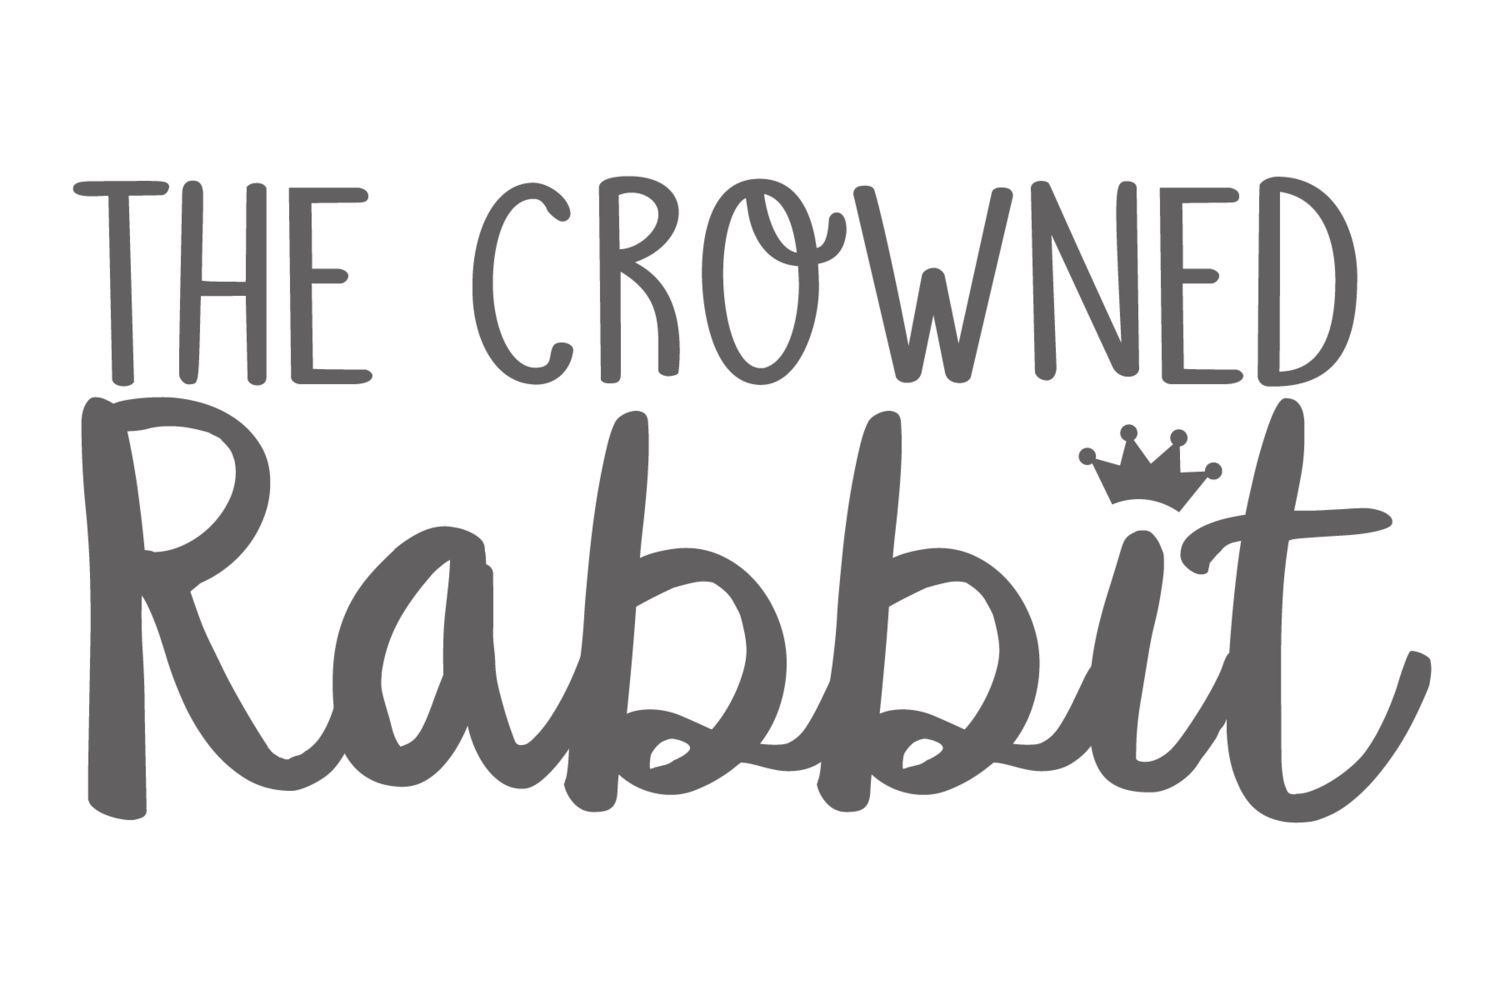 The Crowned Rabbit